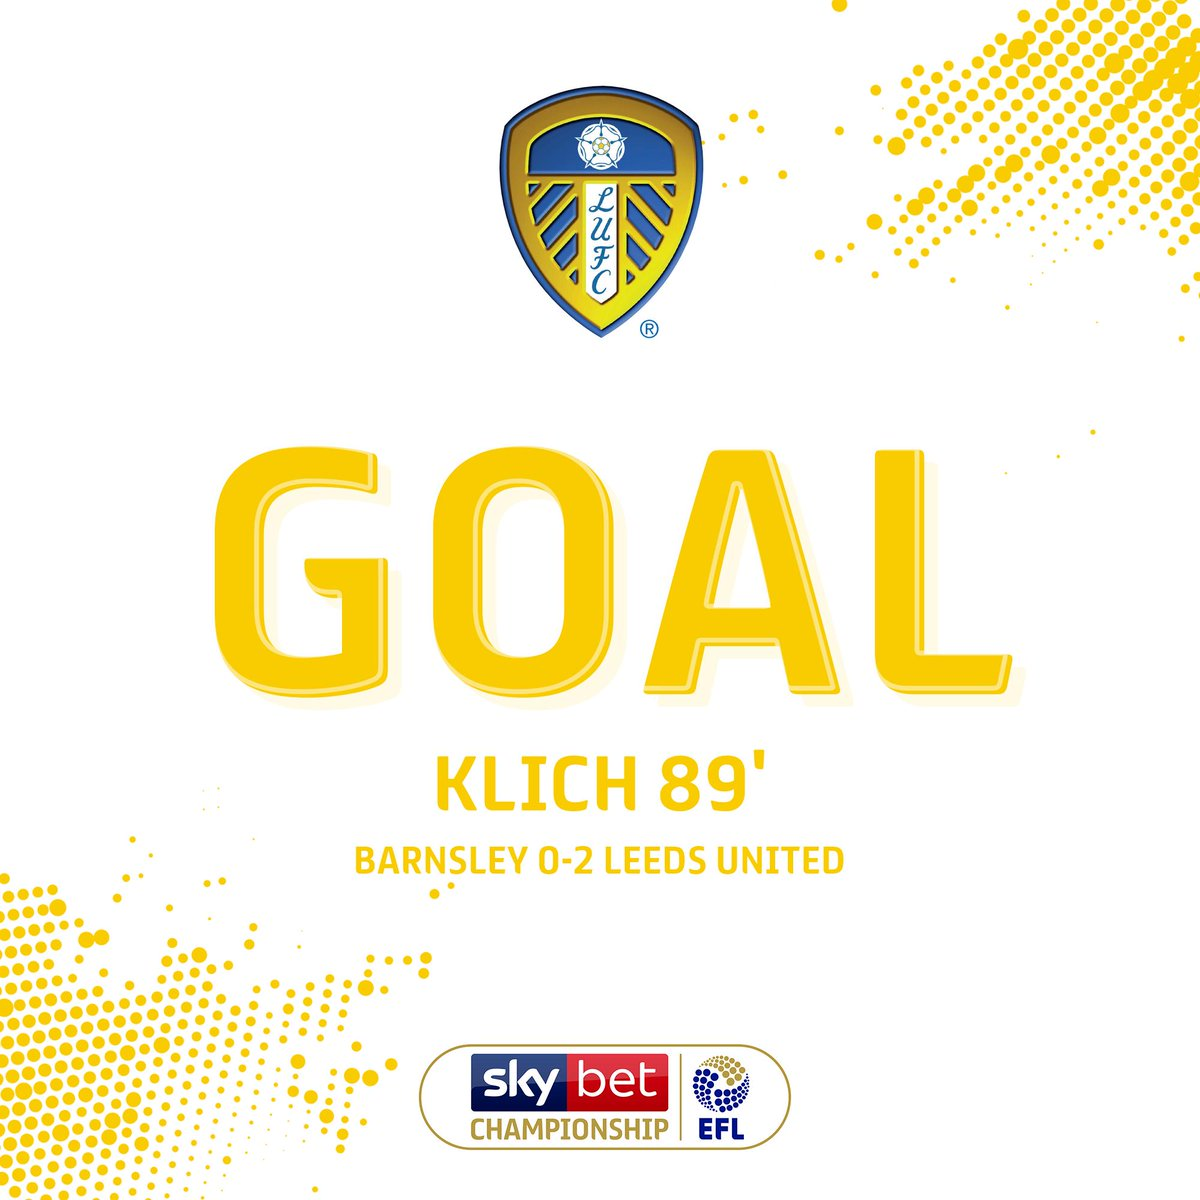 GOAL! Mateusz Klich cooly rolls the ball home from the penalty spot to double @LUFCs lead. #EFL | #SkyBetChampionship